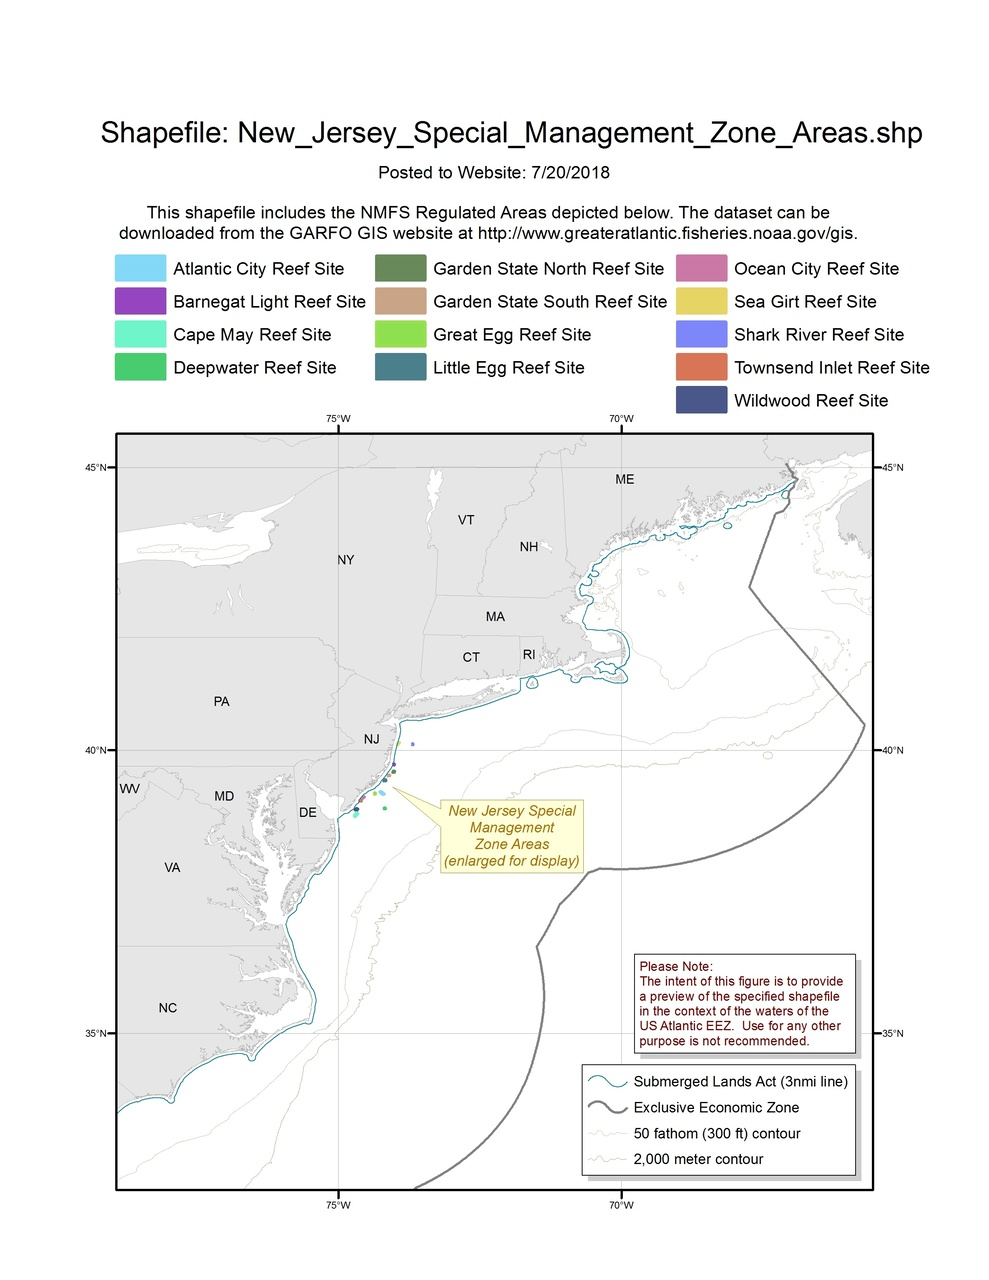 New-Jersey-Special-Management-Zone-Areas-MAP-NOAA-GARFO.jpg